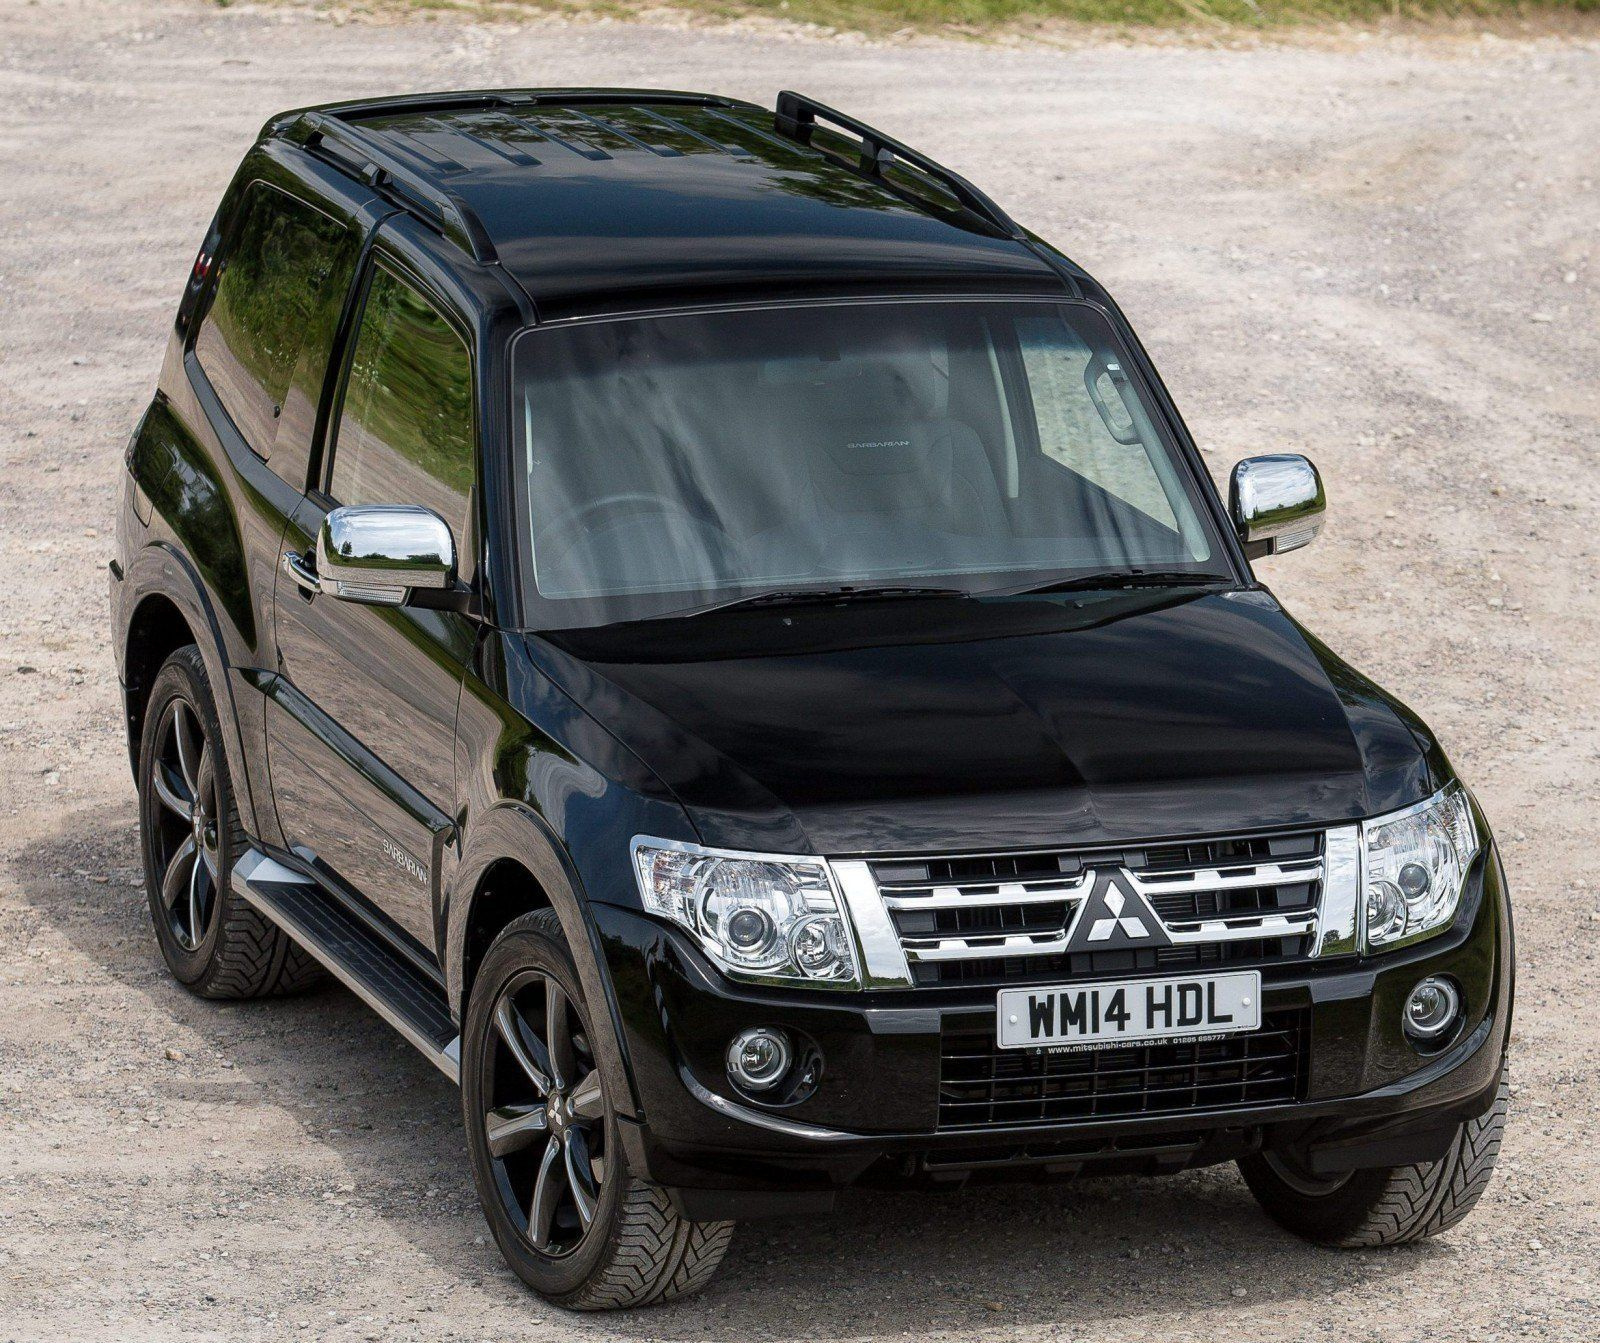 New Mitsubishi Shogun Swb Barbarian For Uk Will Make You Miss The Montero In 2020 Mitsubishi Shogun Mitsubishi Toy Cars For Kids